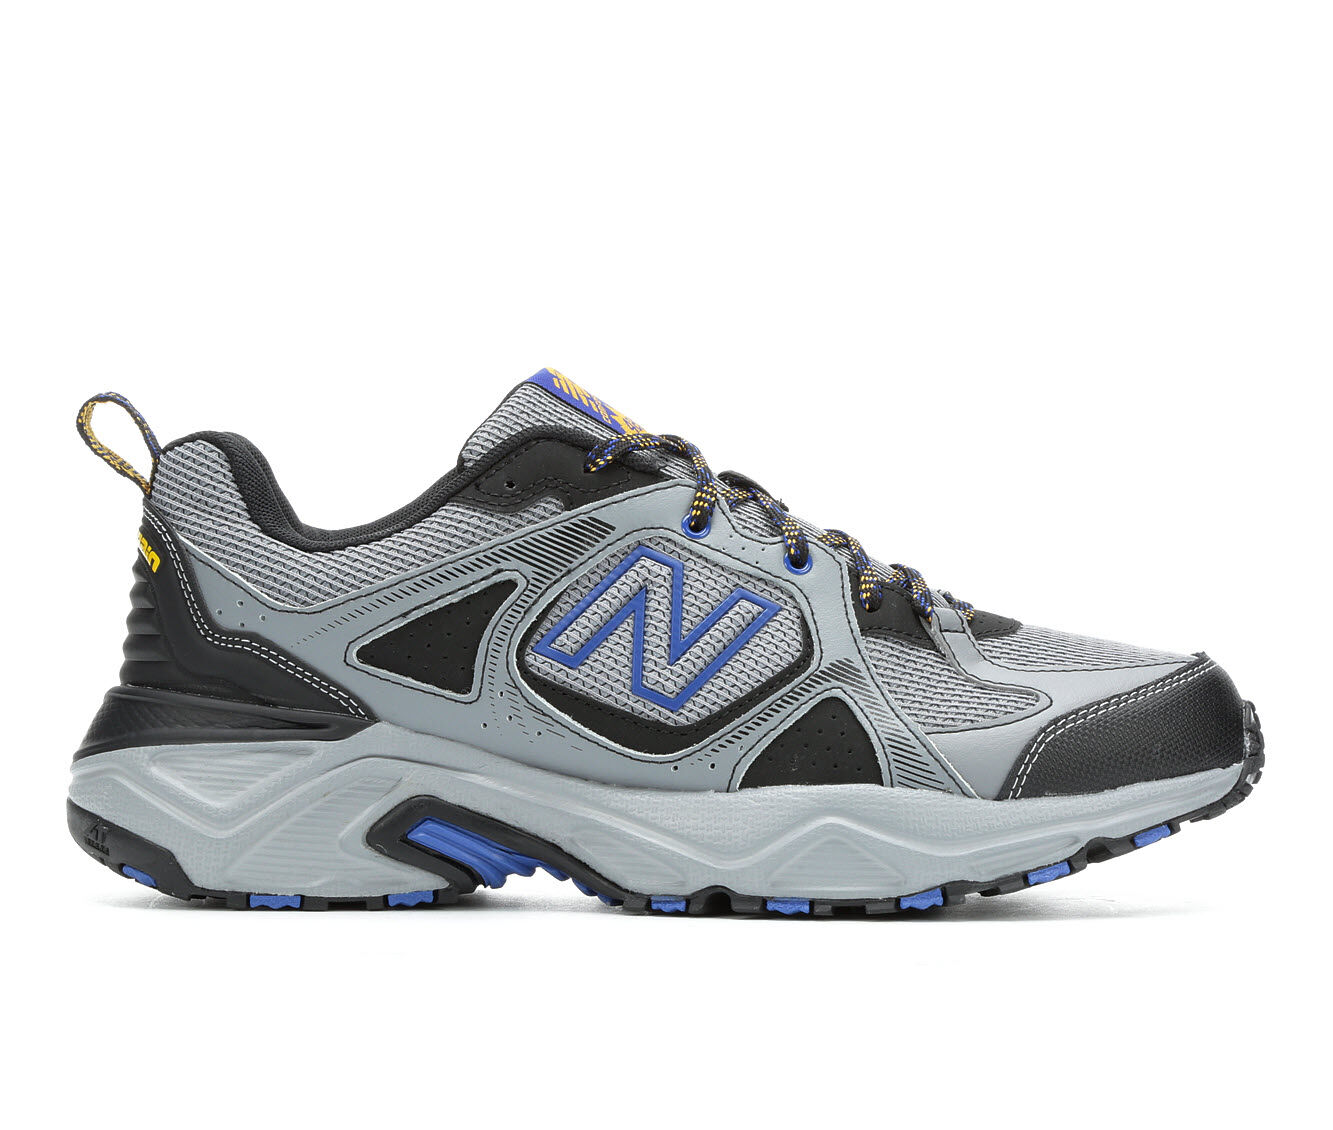 Men's New Balance MT481 Trail Running Shoes Gry/Blu/Org